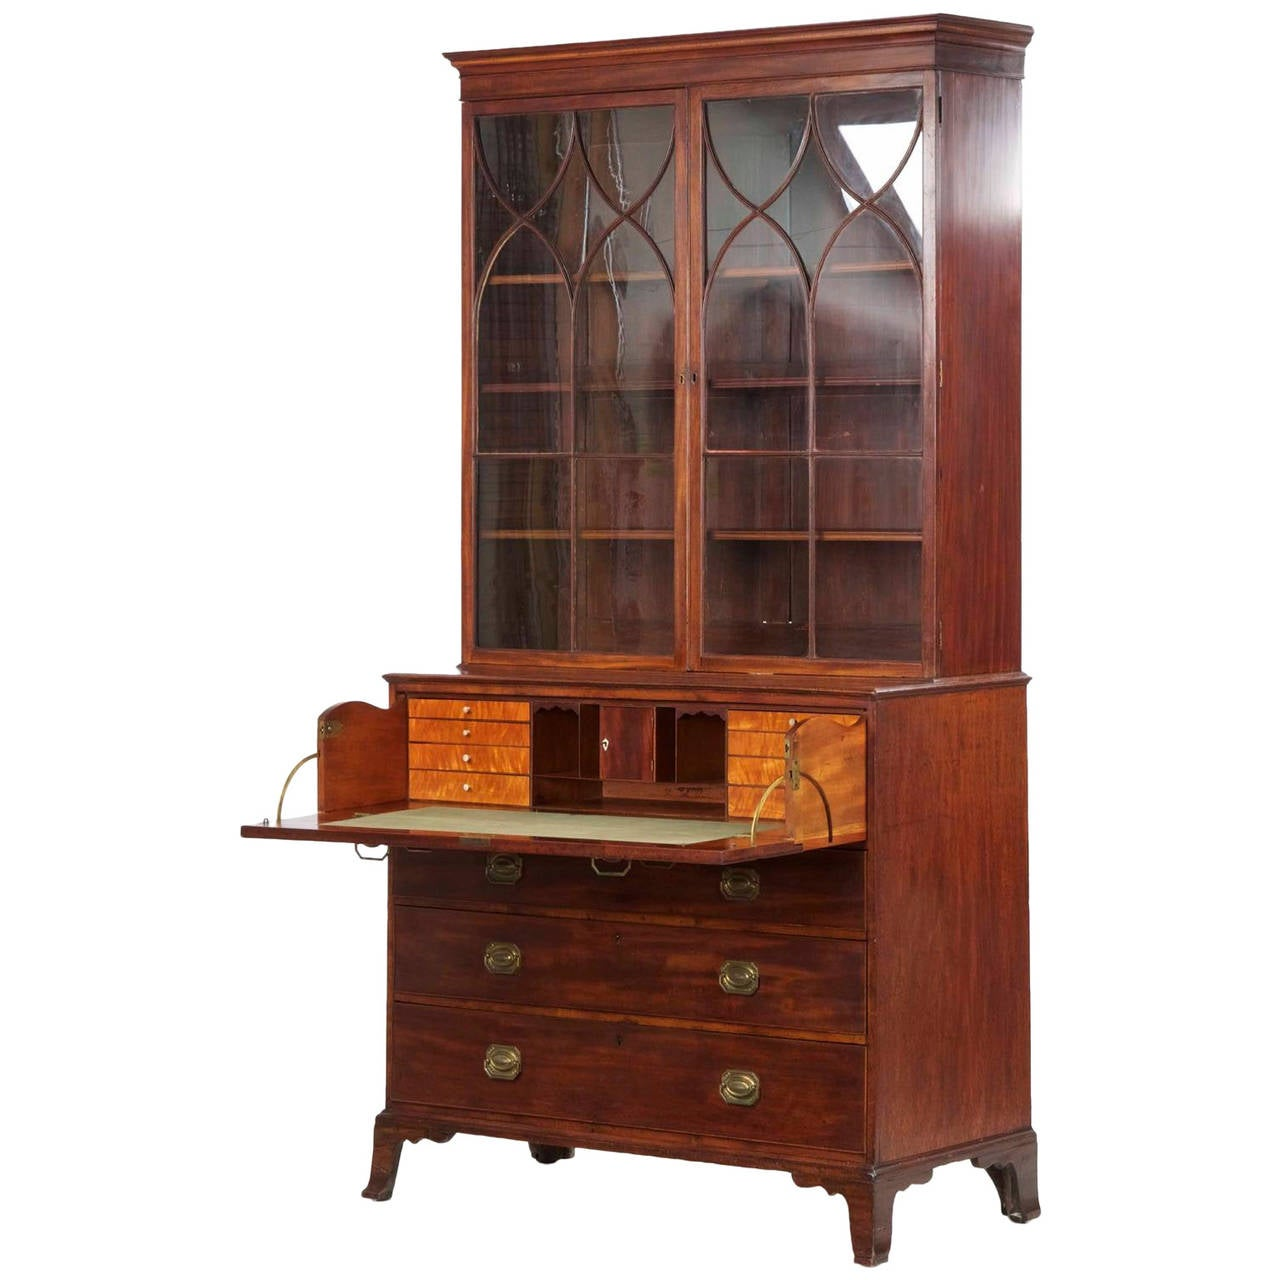 English George III Mahogany Antique Secretary Desk with Bookcase, circa  1790 1 - English George III Mahogany Antique Secretary Desk With Bookcase